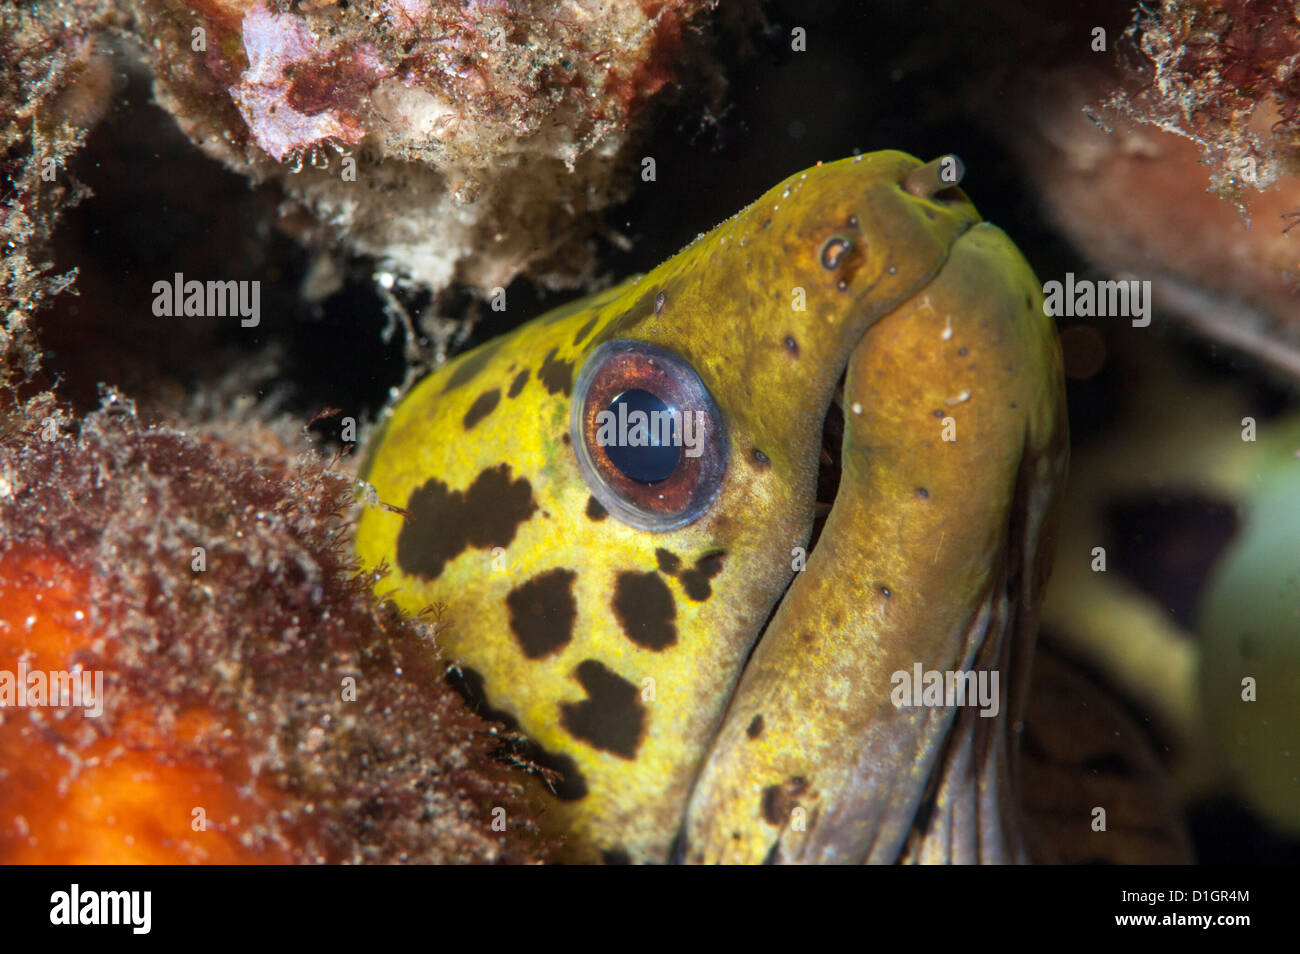 Undulated moray eel (Gymnothorax undulatus), Sulawesi, Indonesia, Southeast Asia, Asia - Stock Image